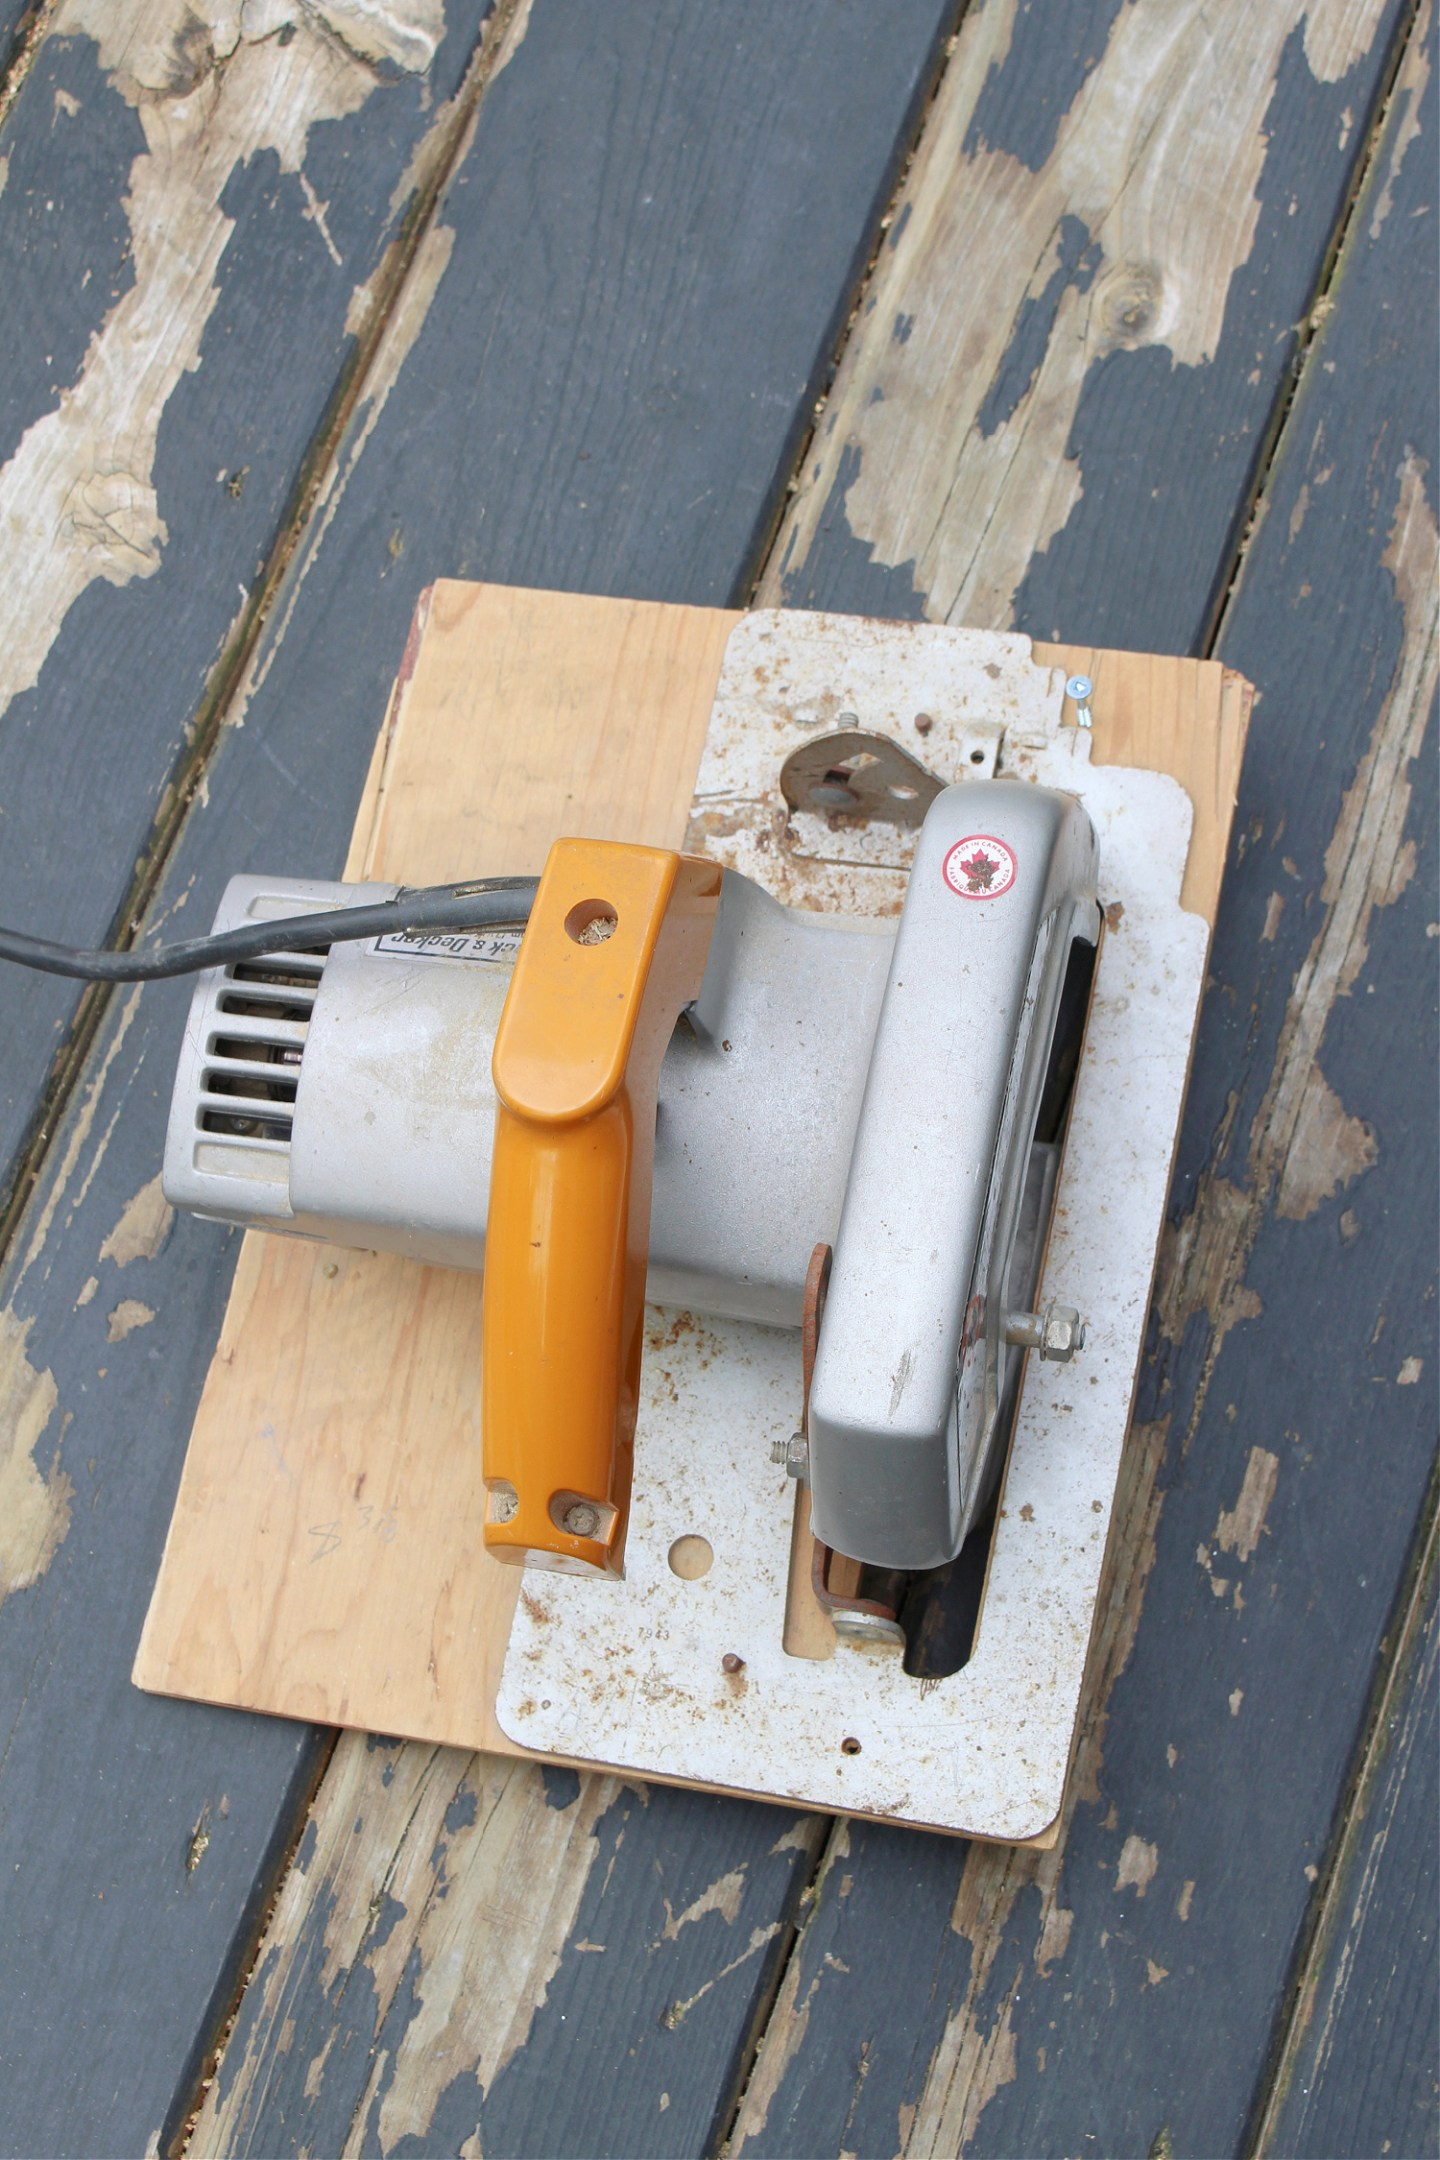 How to Use a Circular Saw to Widen Gaps Between Deck Boards